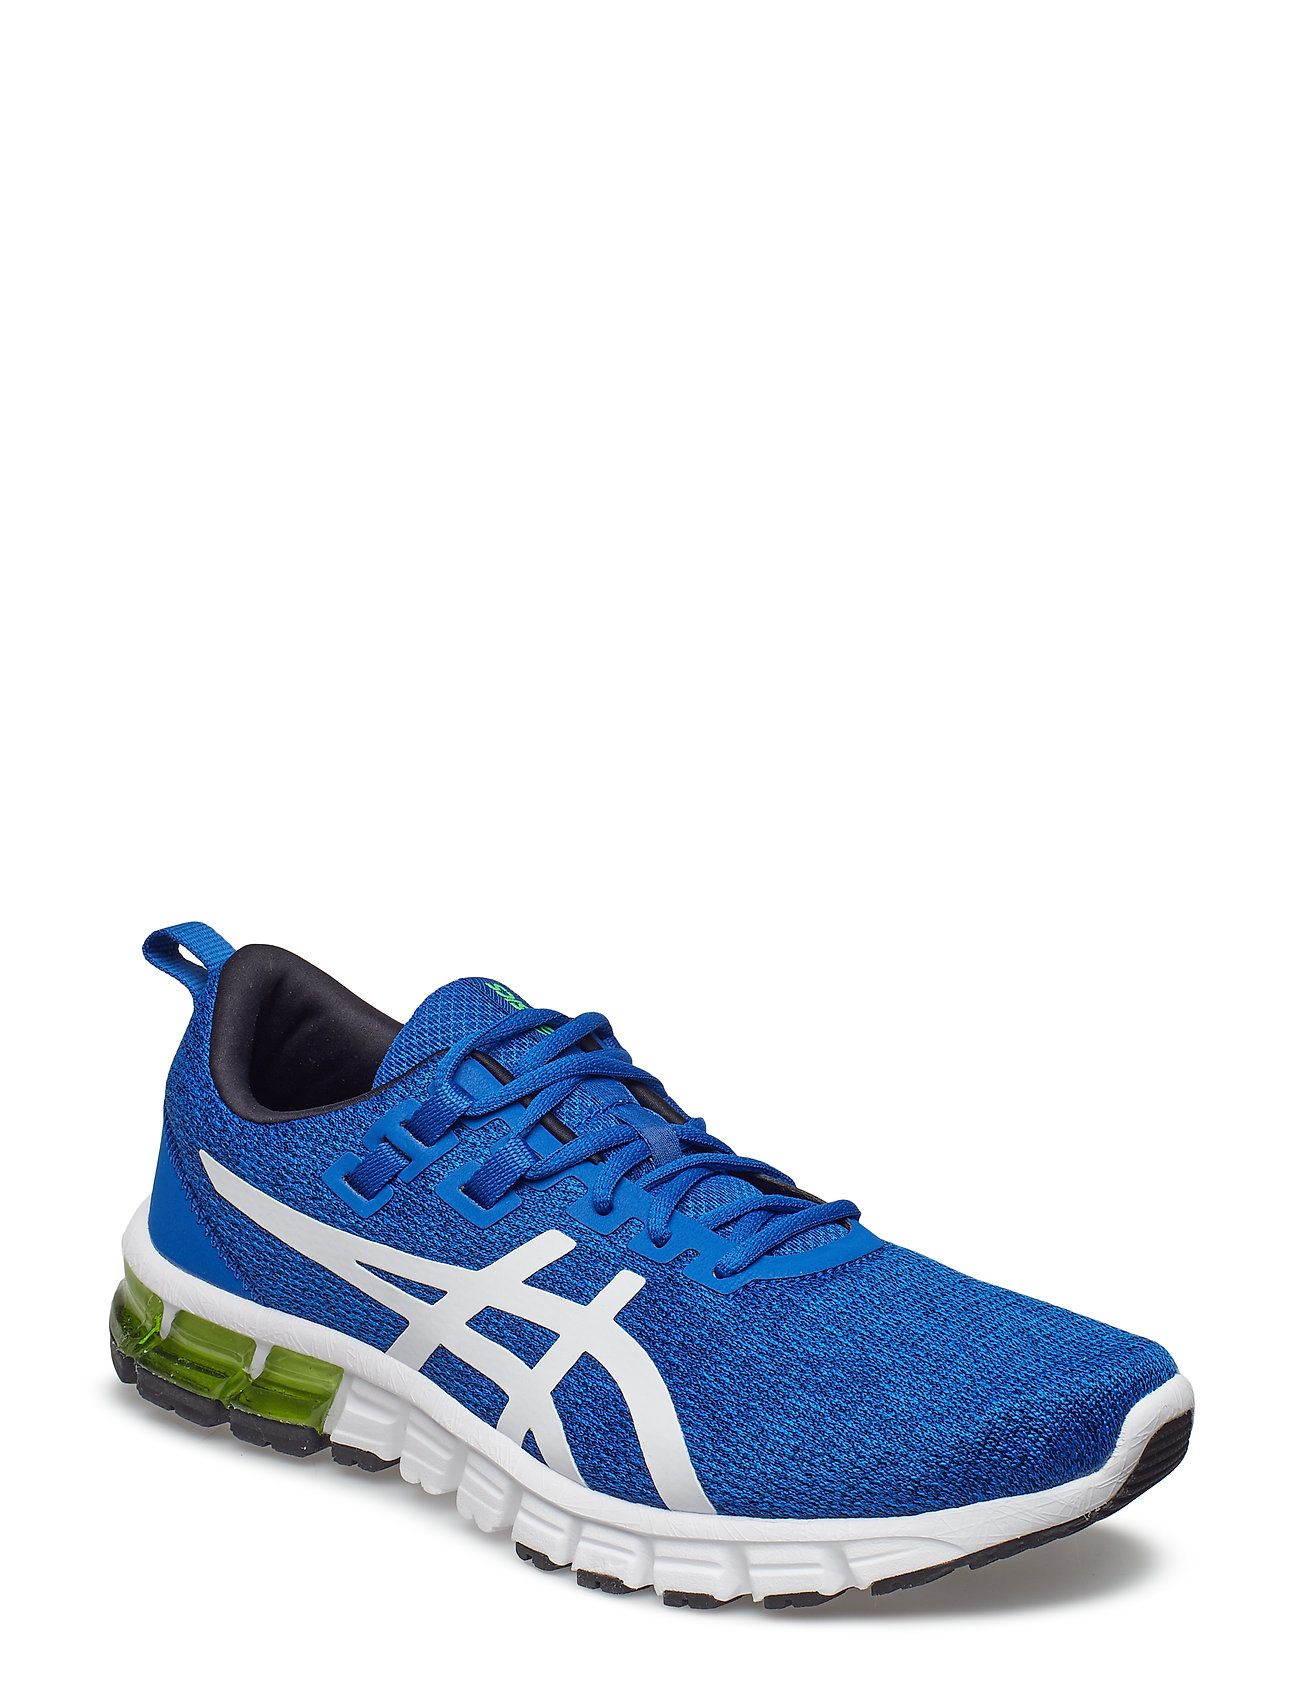 ASICS Gel-Quantum 90 Shoes Sport Shoes Running Shoes Blau ASICS